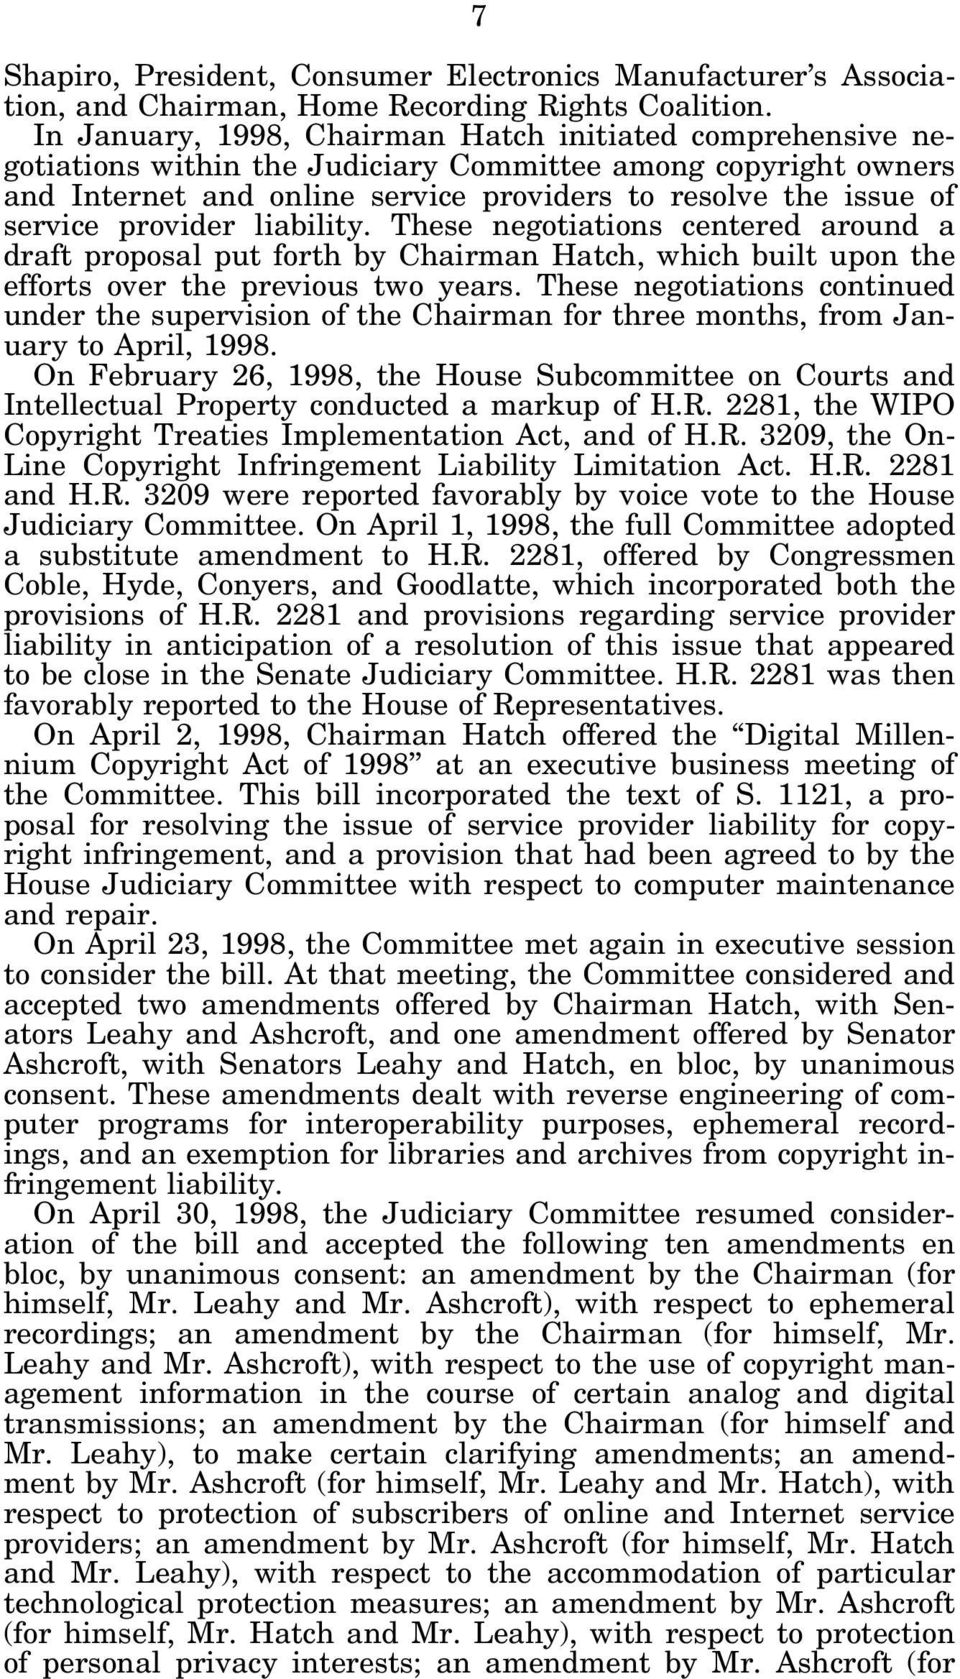 provider liability. These negotiations centered around a draft proposal put forth by Chairman Hatch, which built upon the efforts over the previous two years.